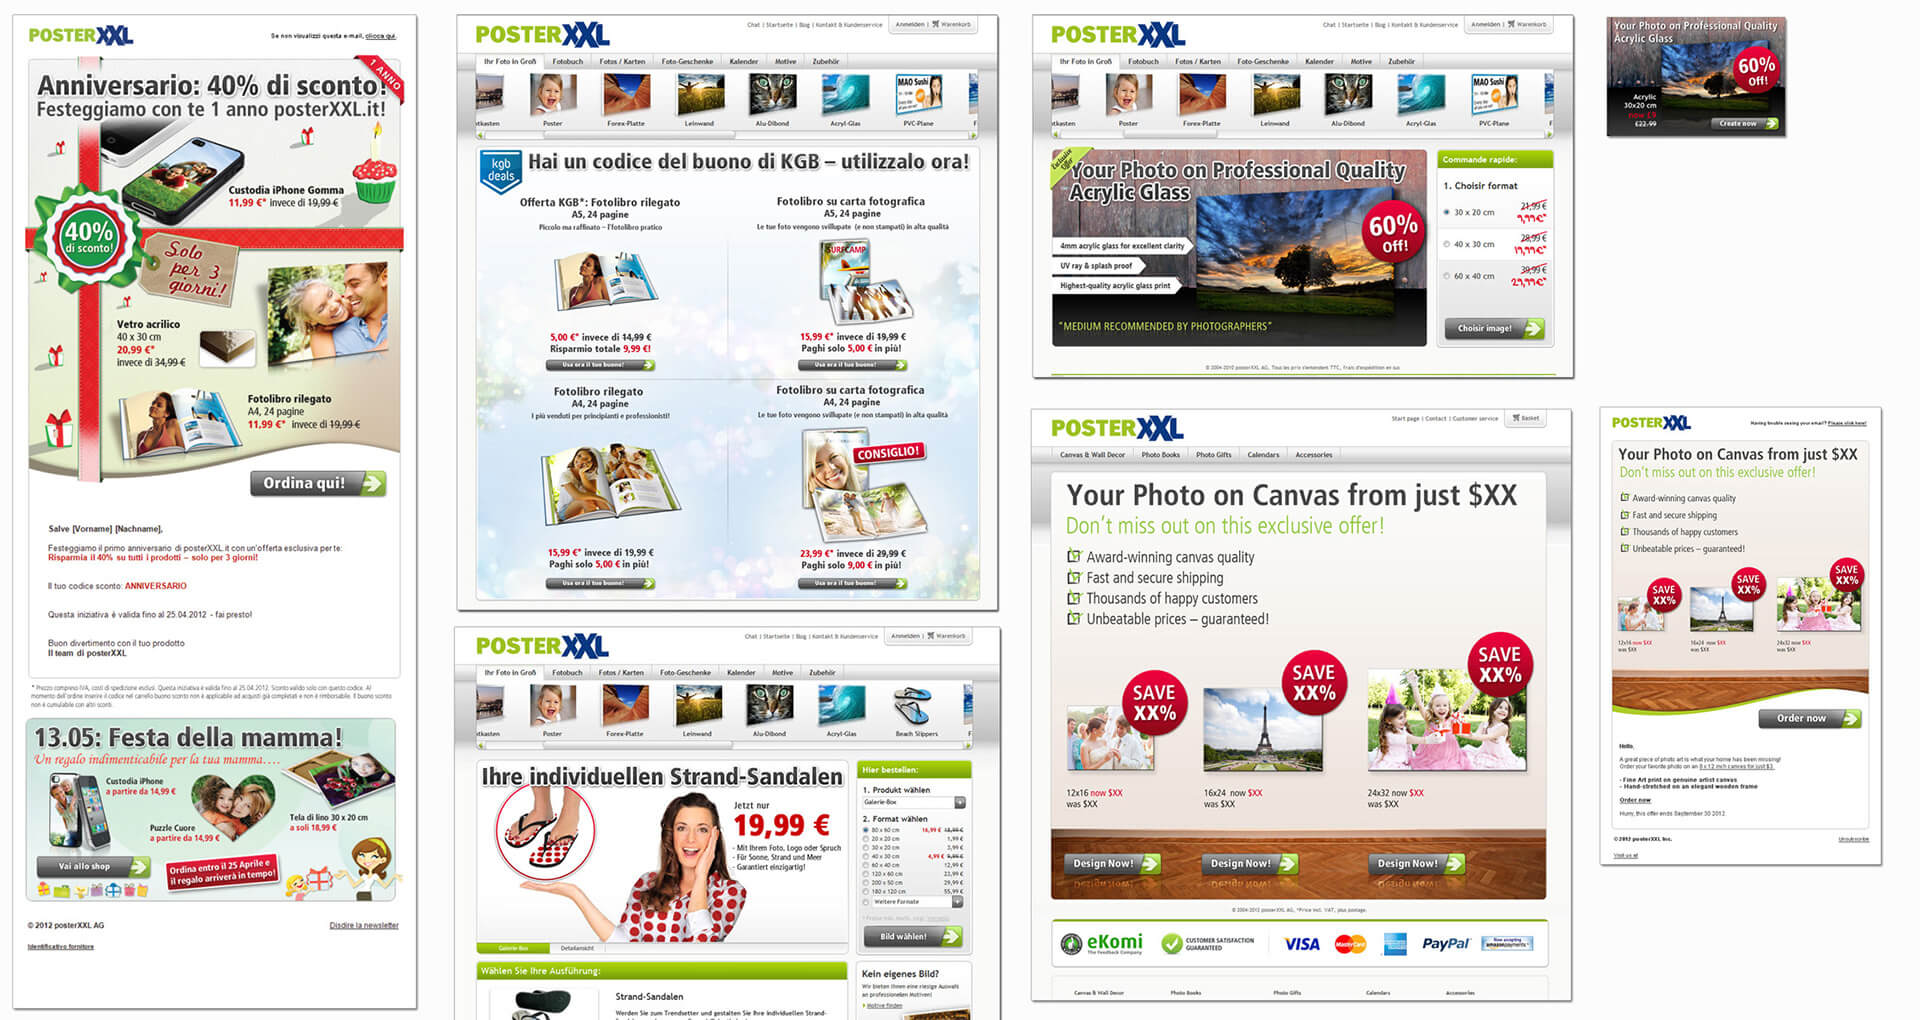 webdesign responsive seo sem online marketing wordpress html5 css newsletter banner 24